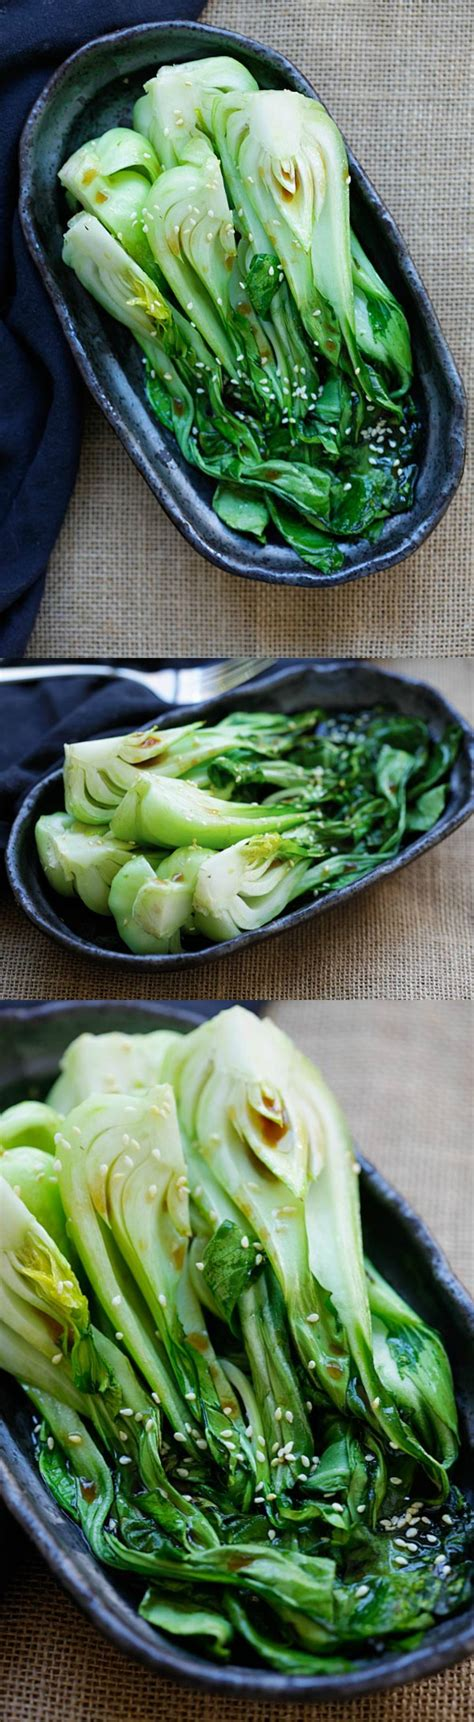 Easy vegetable recipe that takes only 10 mins. Healthy and ...